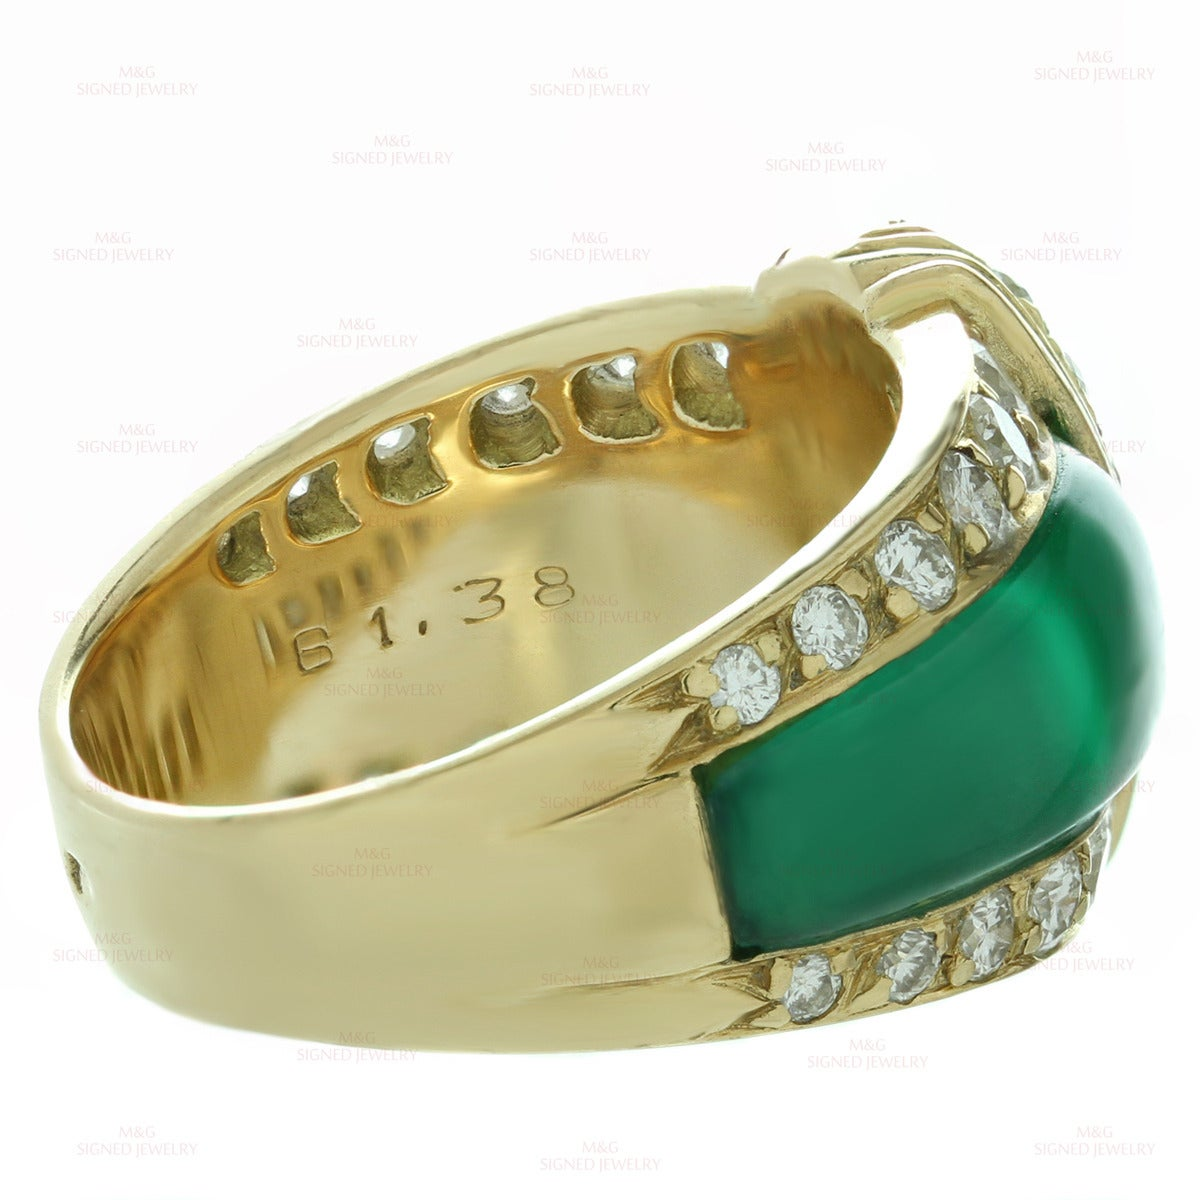 Van Cleef & Arpels Green Chrysoprase Diamond Yellow Gold Ring For Sale 2